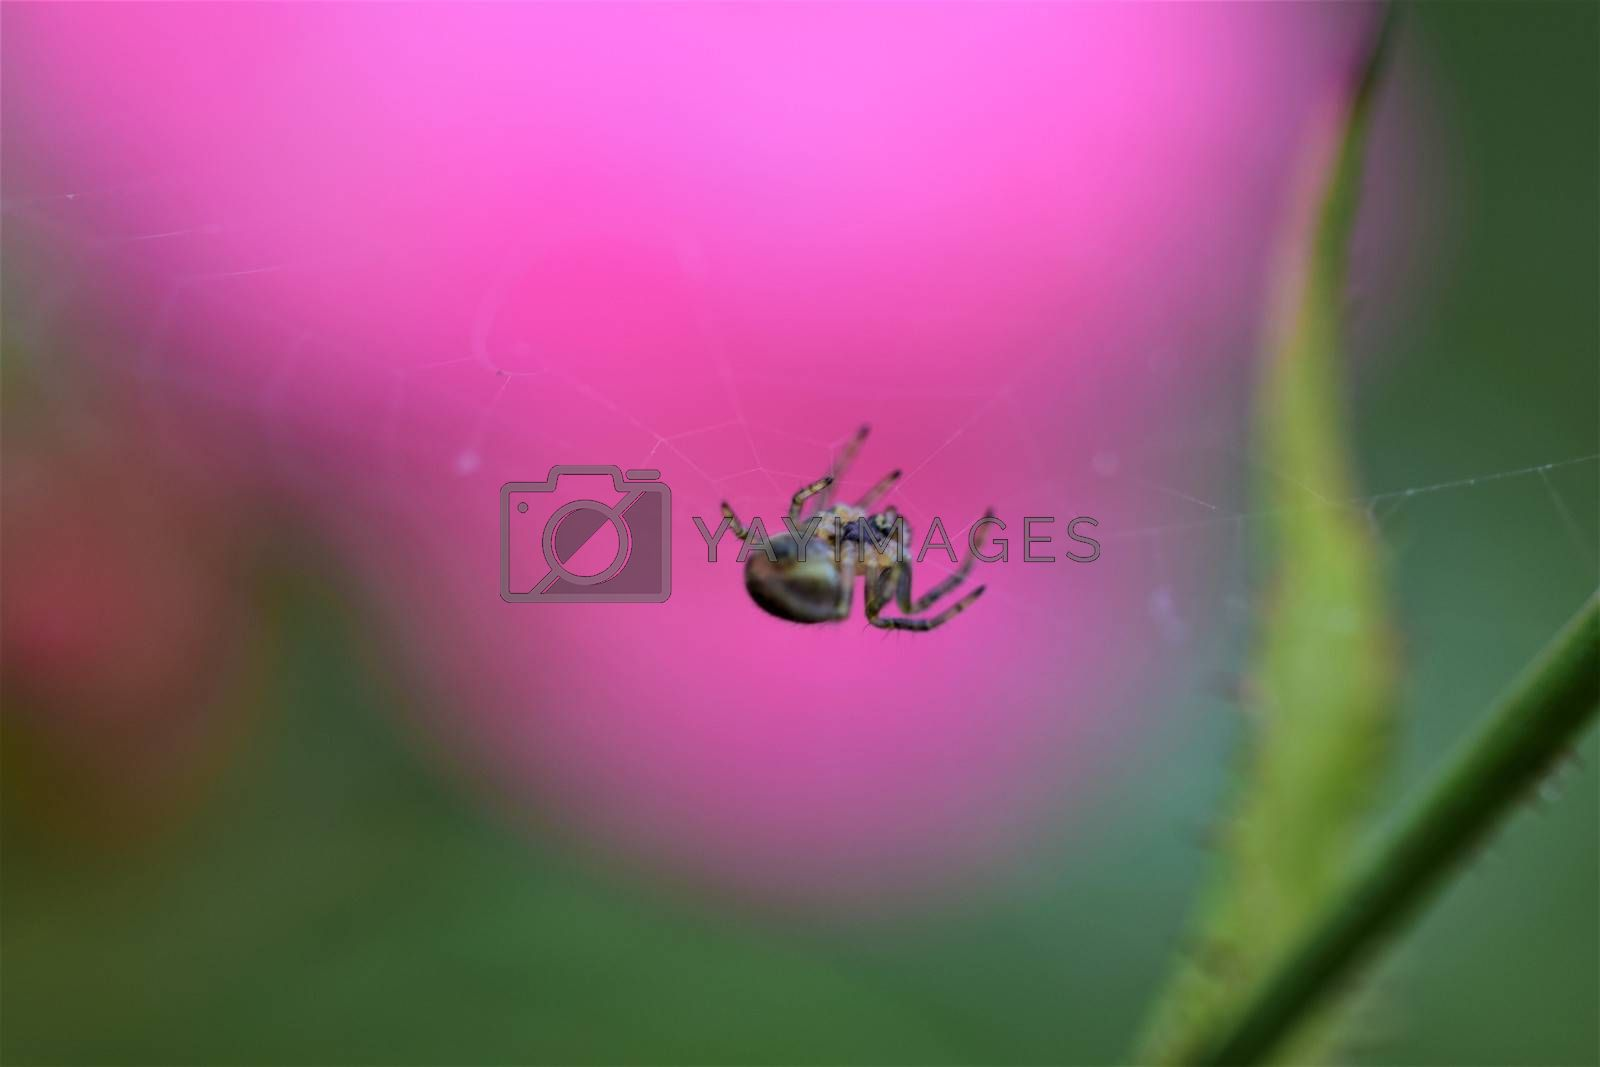 Spider in her spider web against a pink and green blurred background